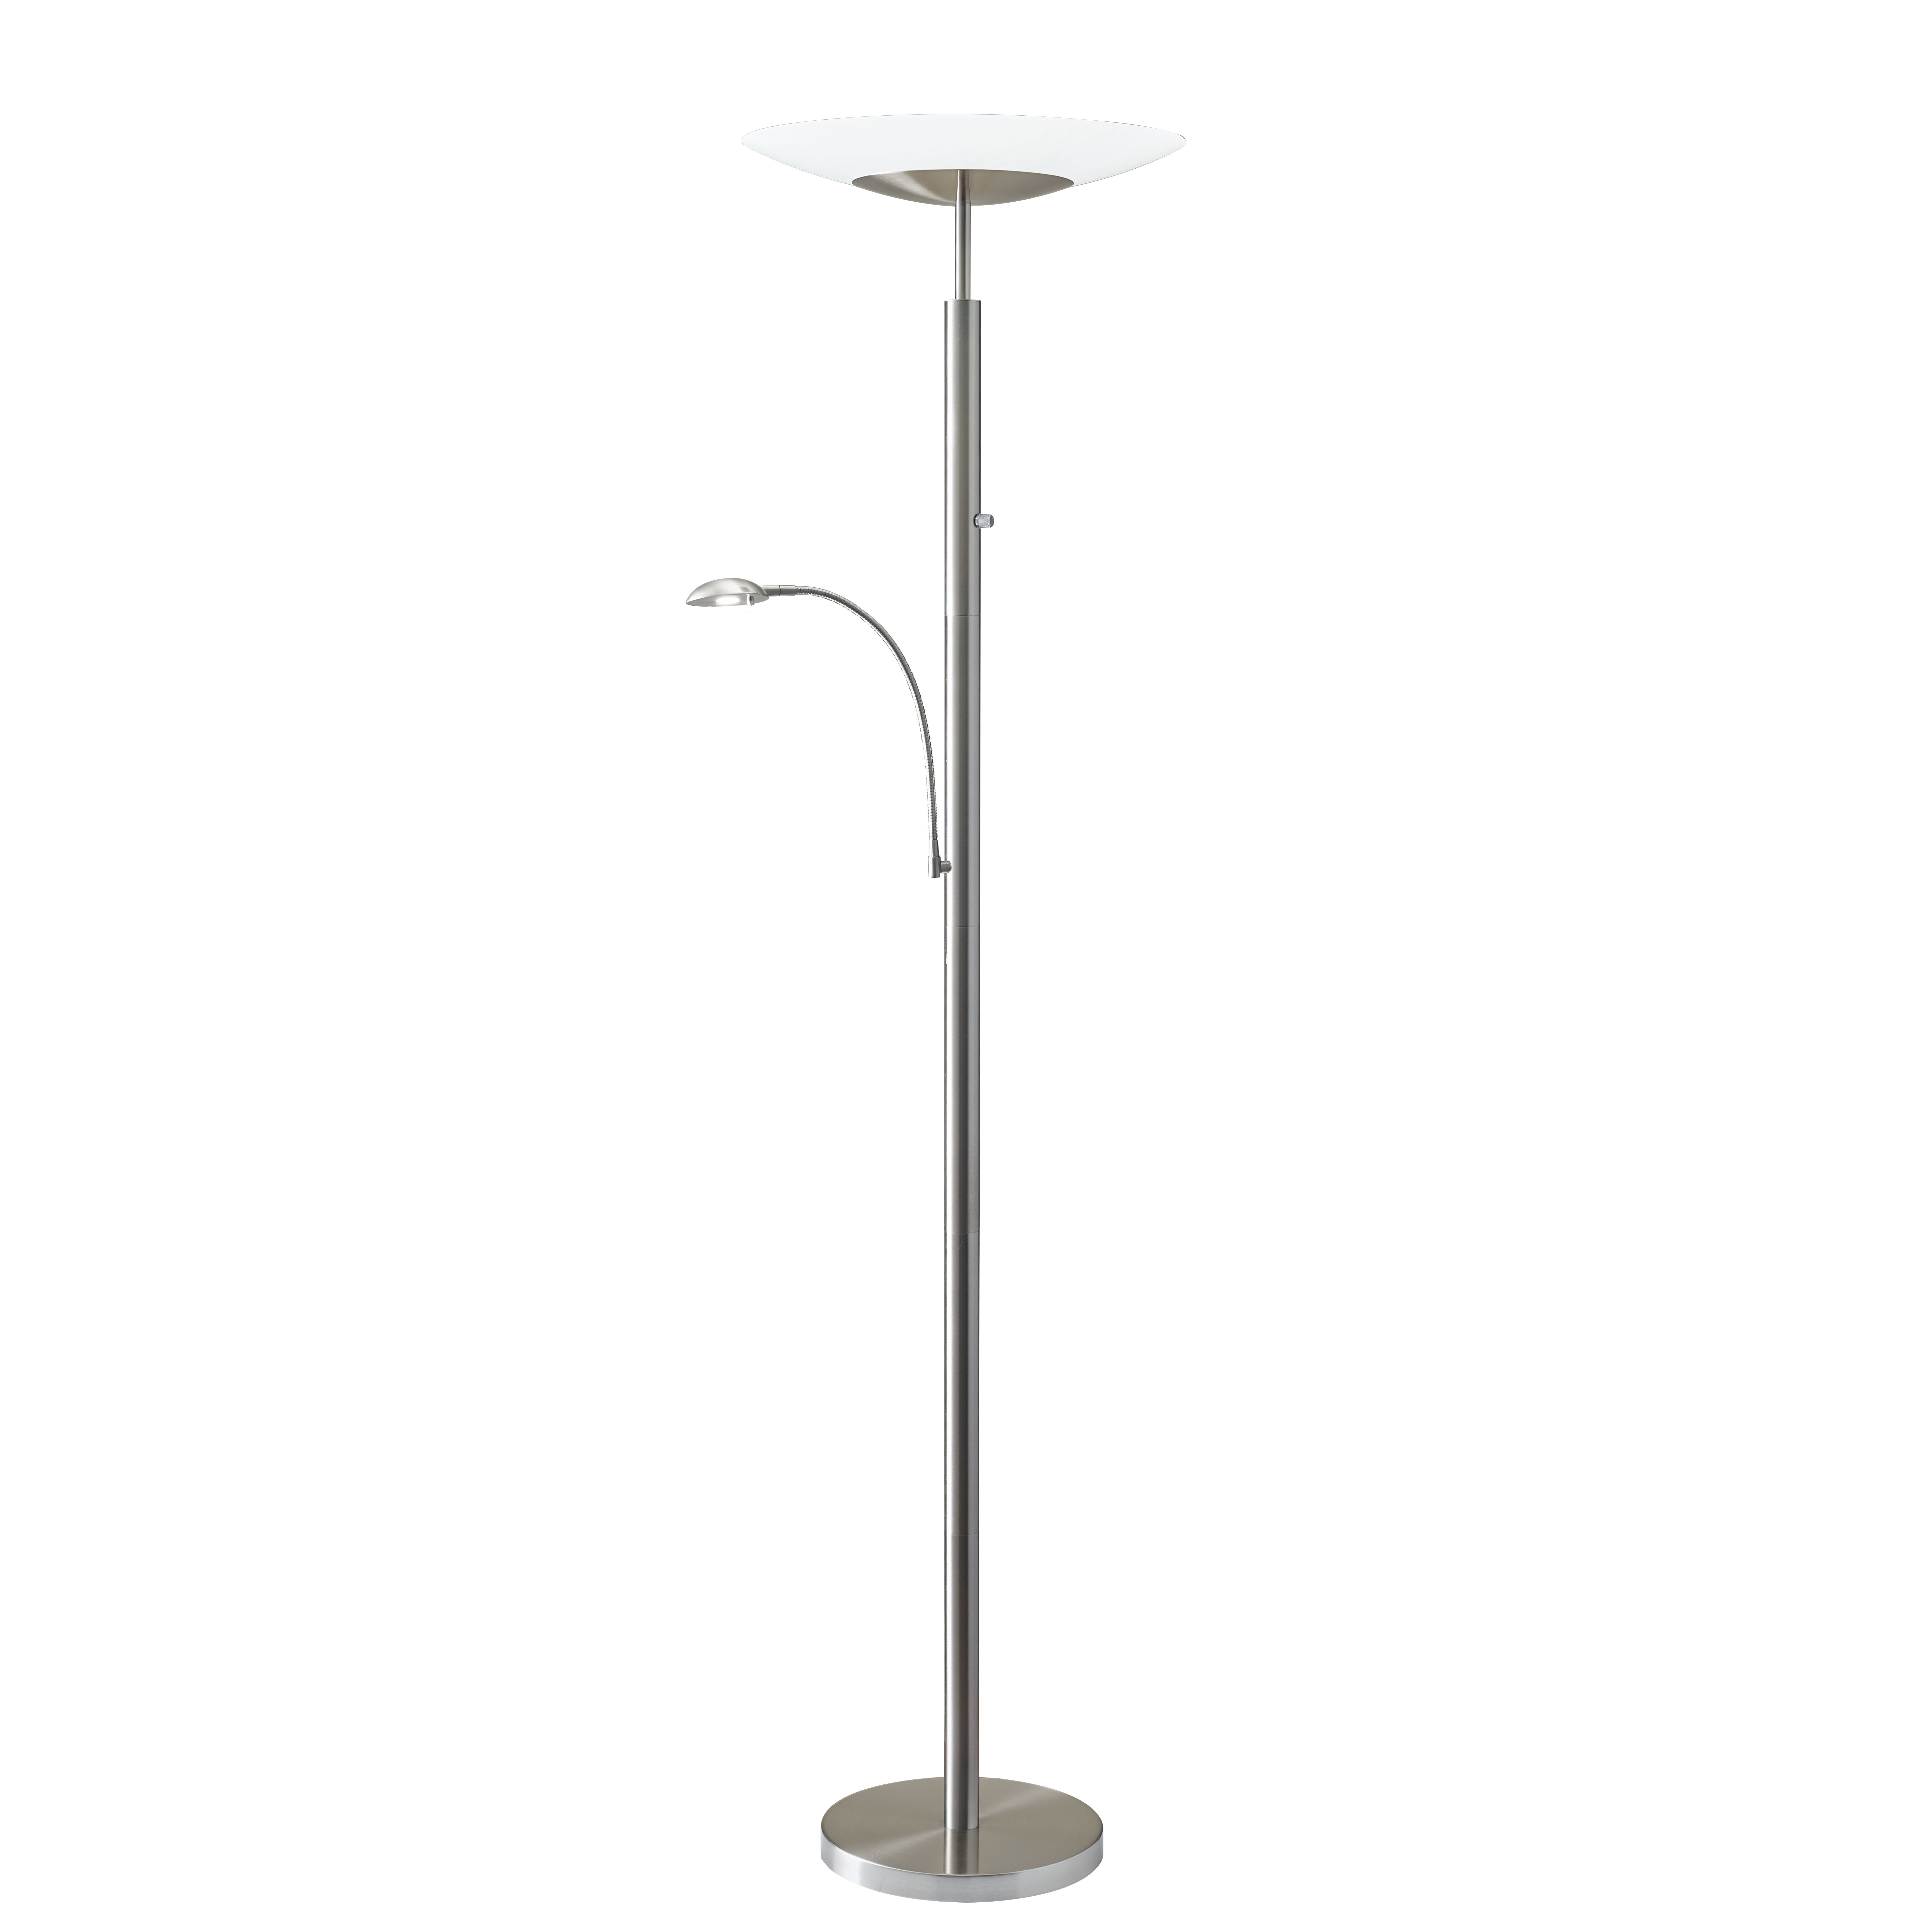 Adesso stellar 72quot led torchiere floor lamp wayfair for Adesso remote control torchiere floor lamp